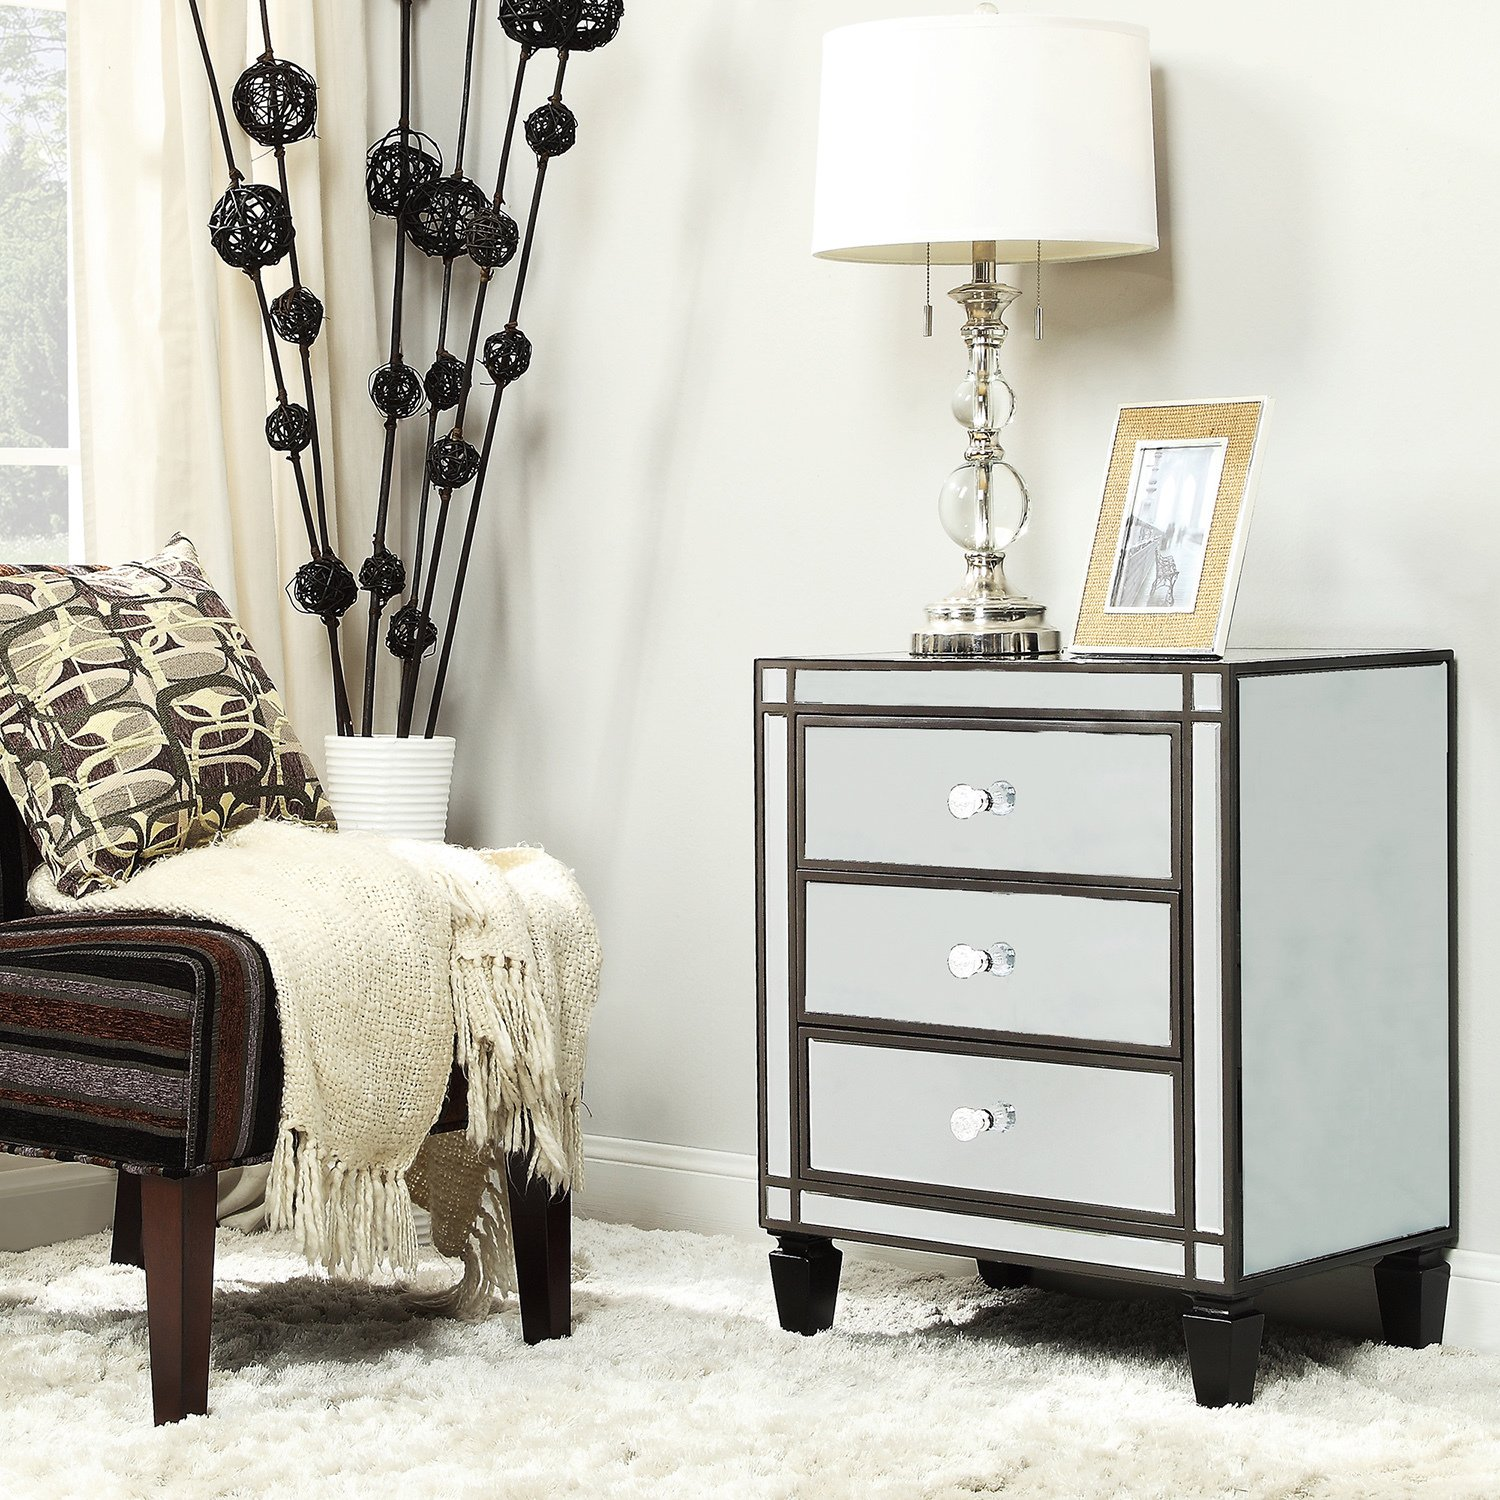 escanaba mirrored drawer black trim accent table inspire bold pulaski sofa tiffany style hampton bay patio dining set cabinet drawers round wood young america furniture bedroom